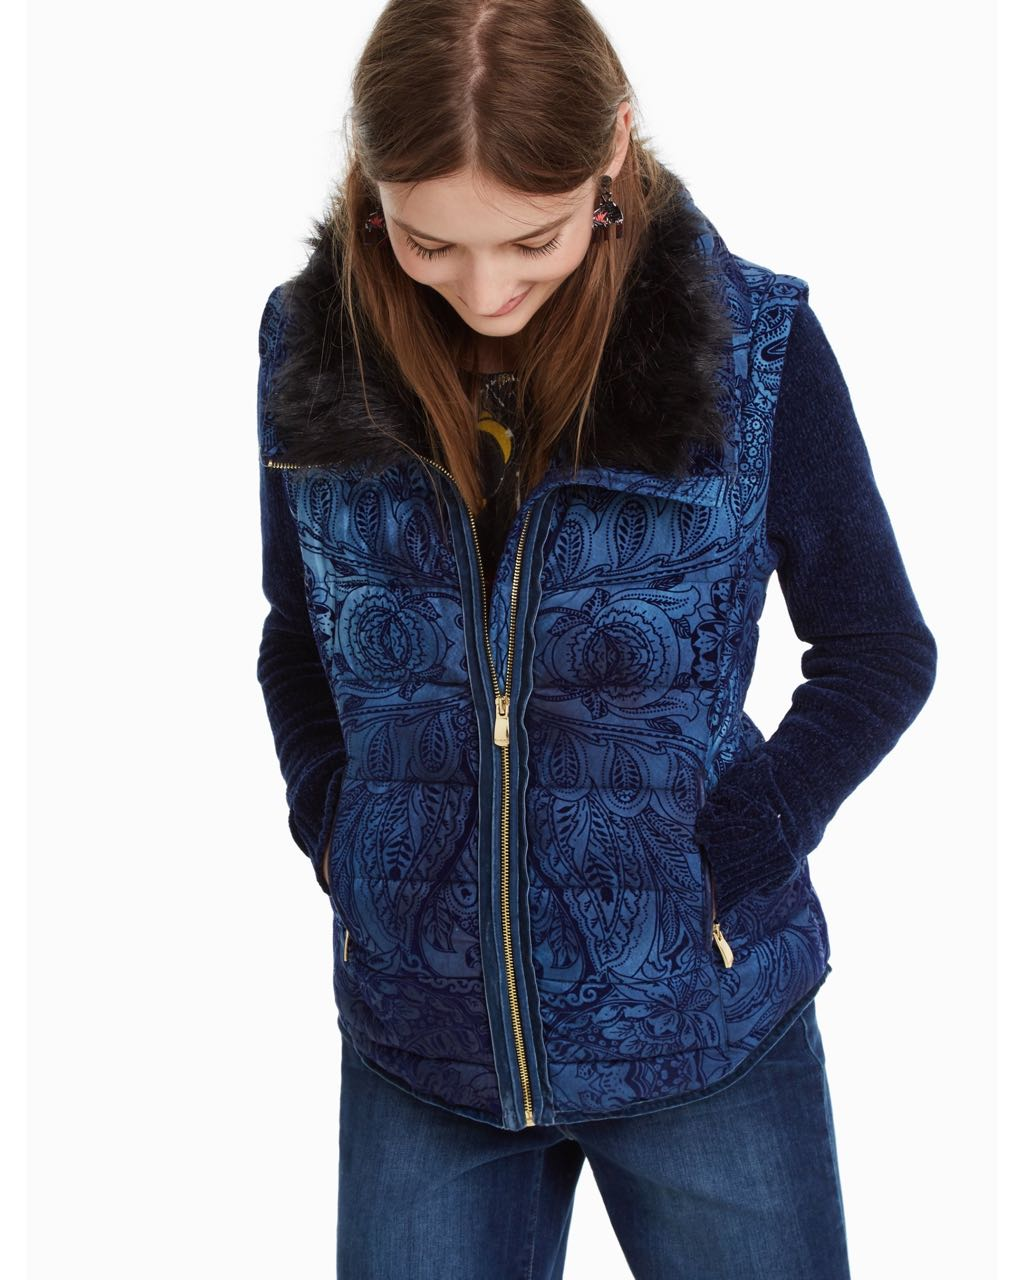 Desigual 2 In 1 Jacket Alexandra 18wwew87 Navy Fall